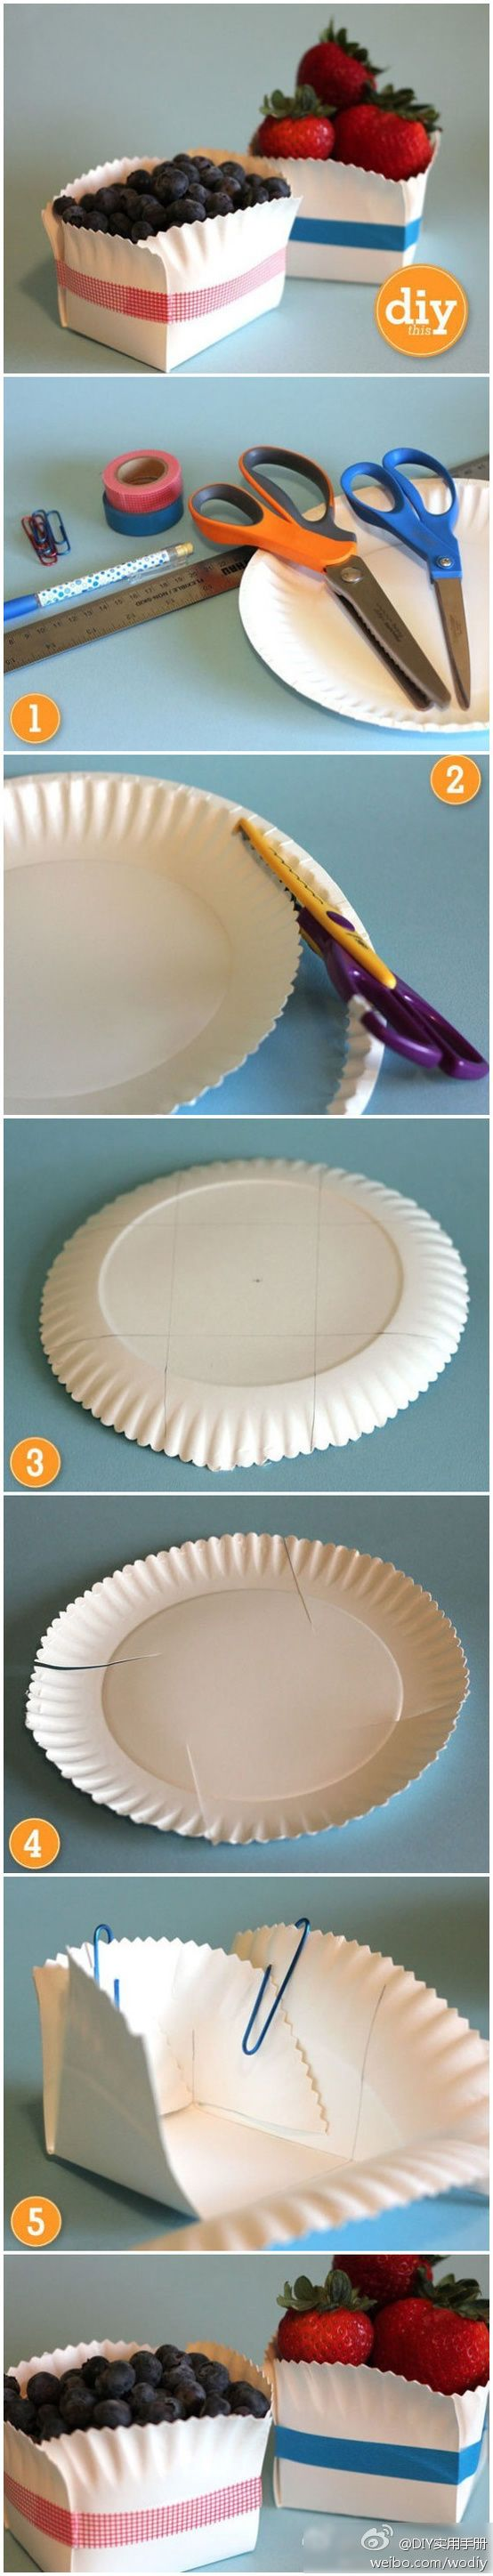 Cute way to make little snack boxes with paper plates. You can use ribbon or strips of fabric or even duck tape to hold them together. Simple and no clean up!